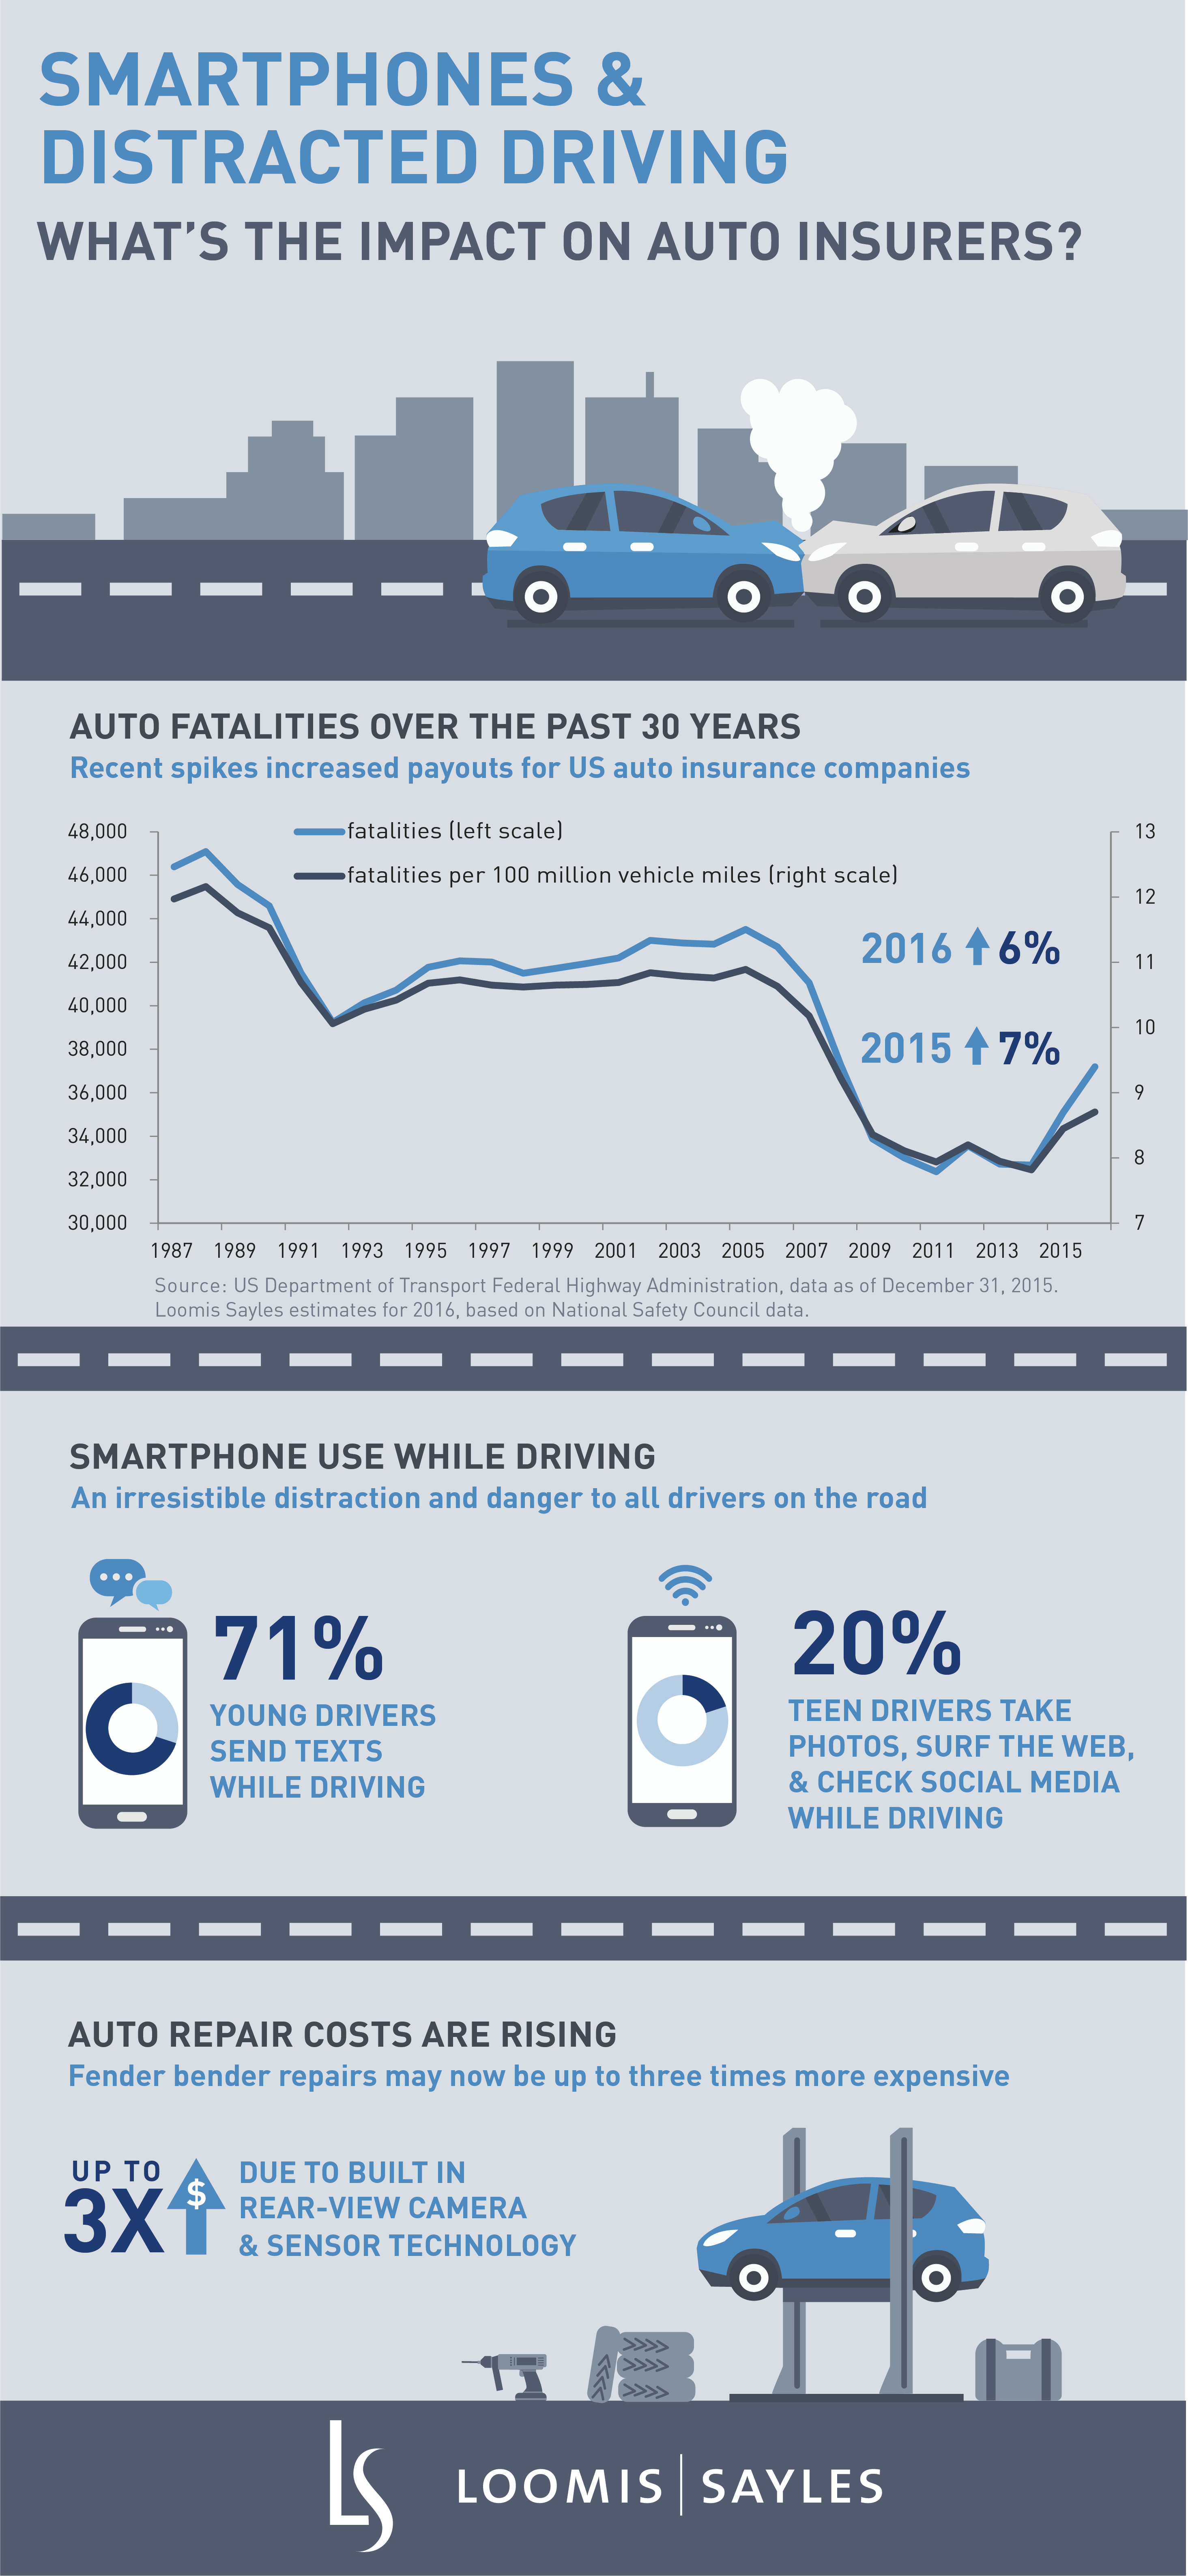 Smartphones and Auto Insurance_finalV2.png